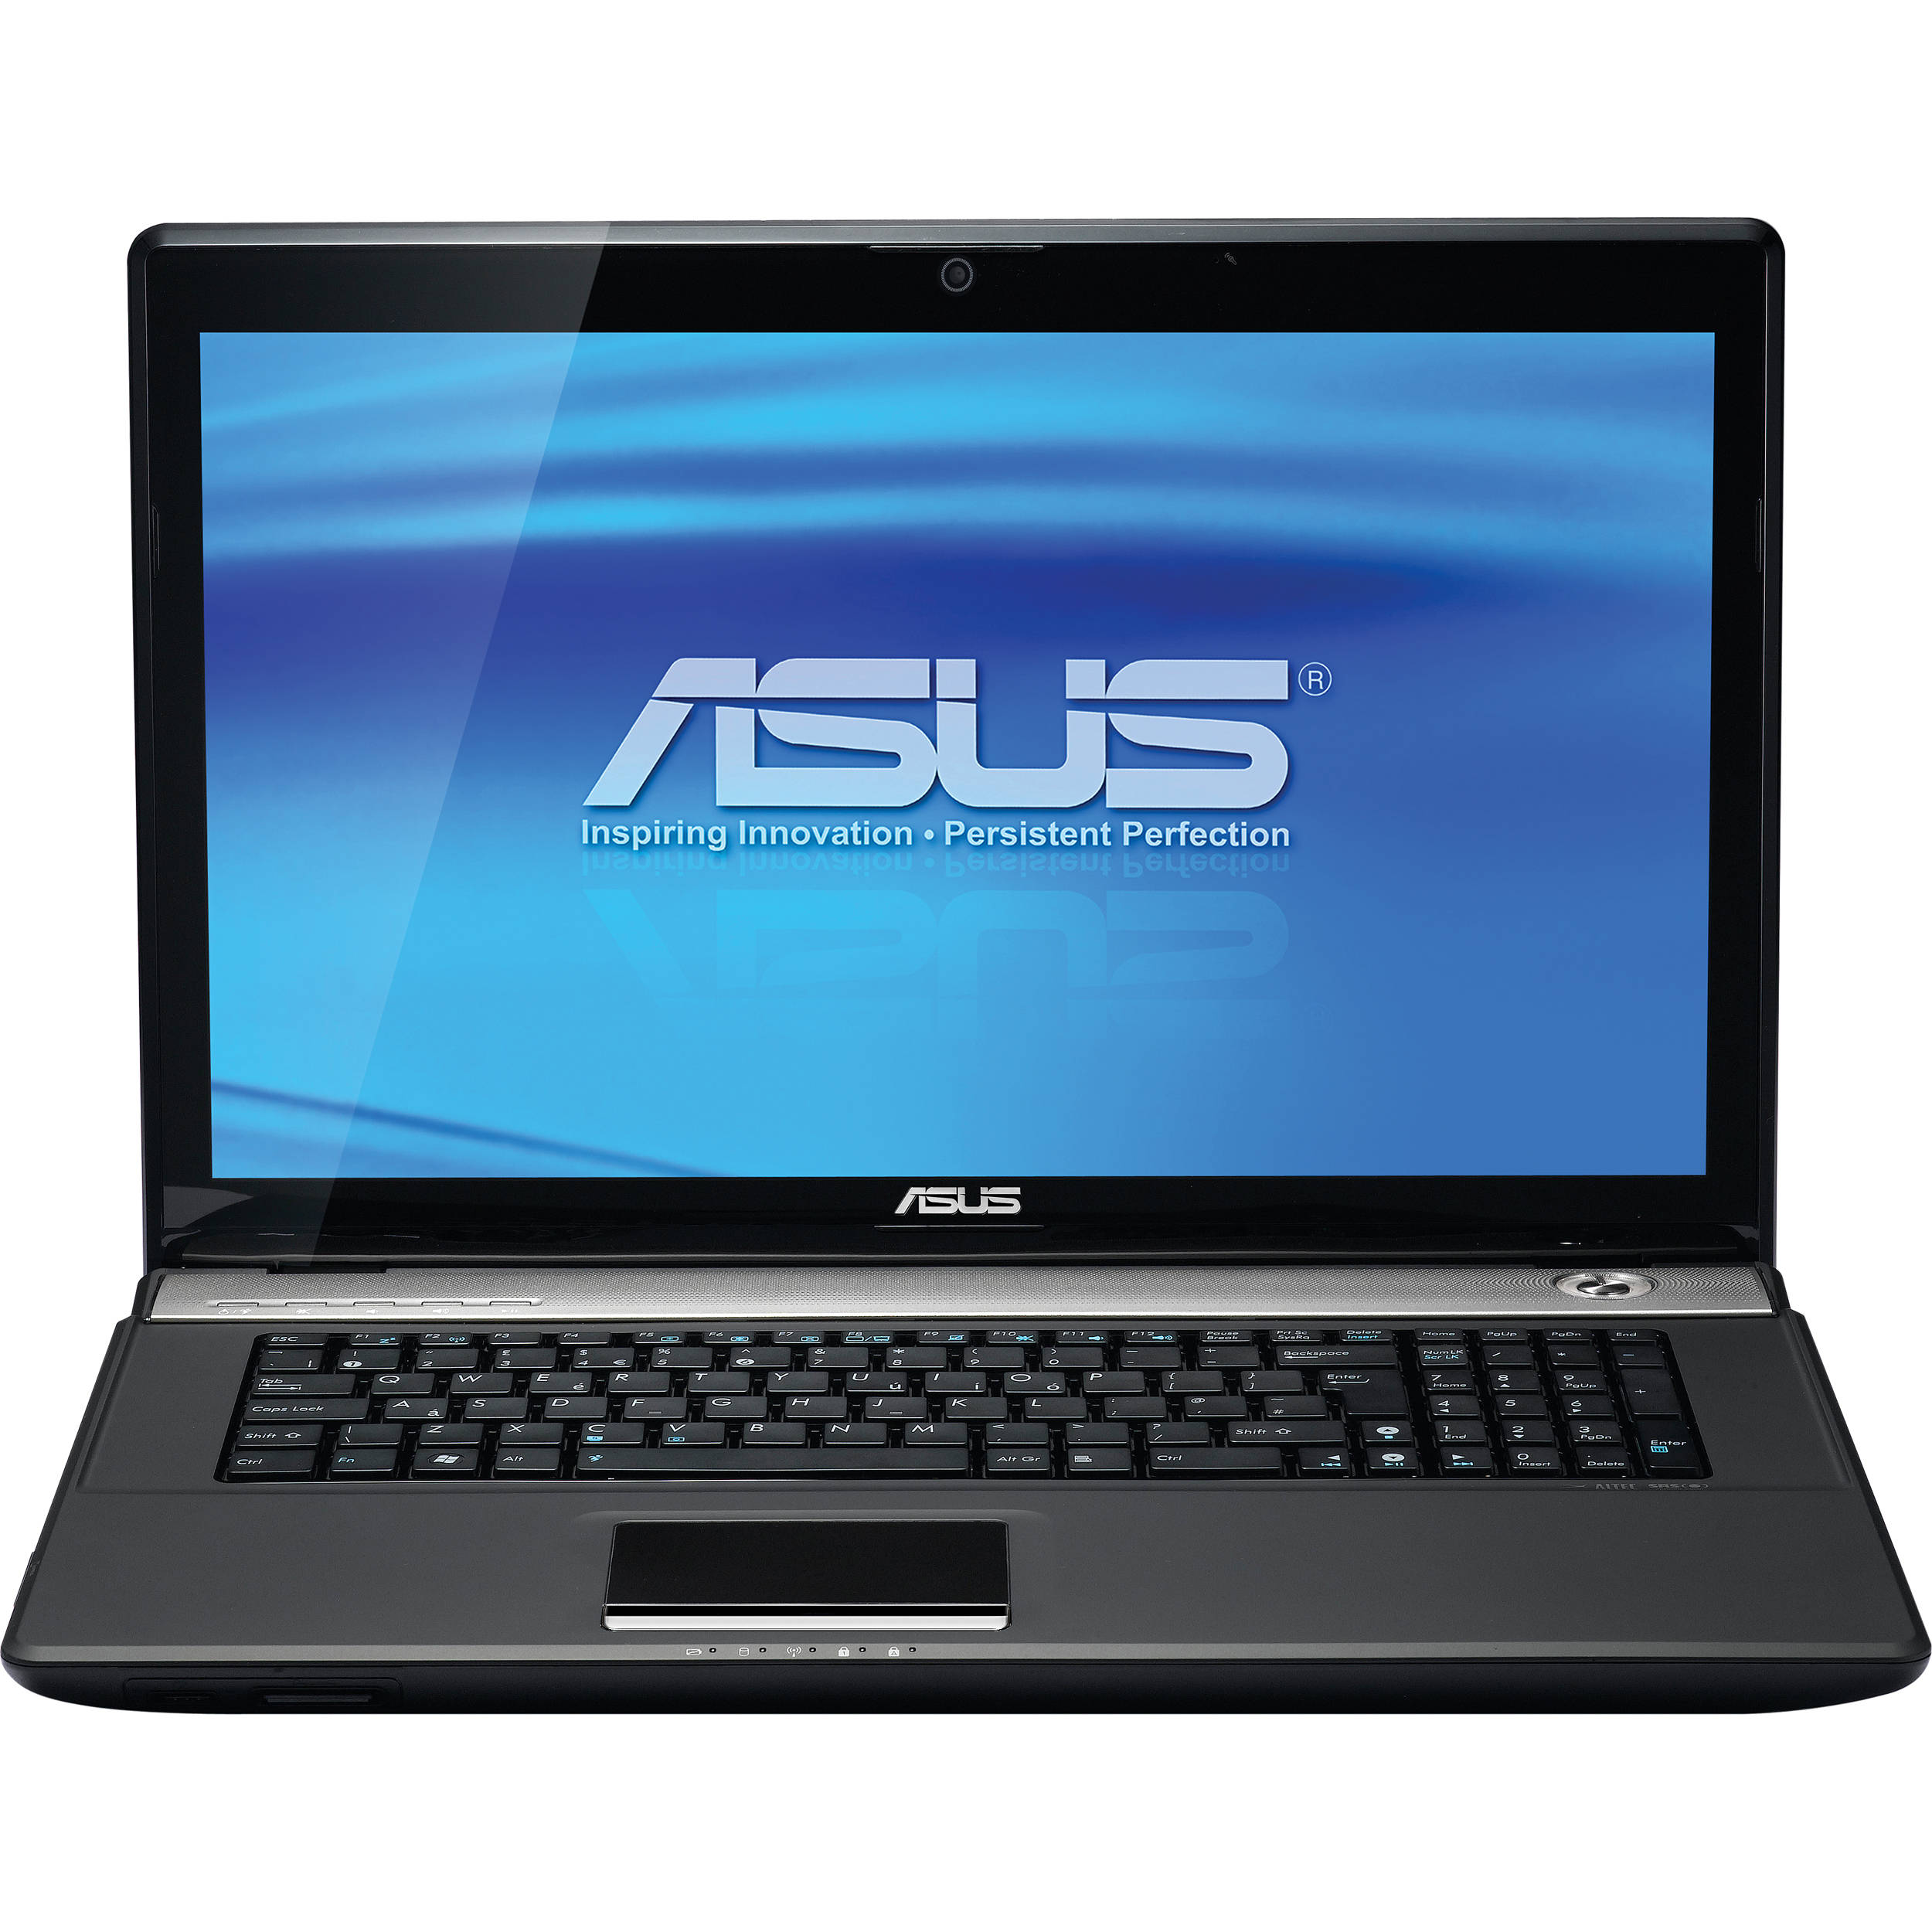 Asus N71Jq Intel Turbo Boost Driver Download